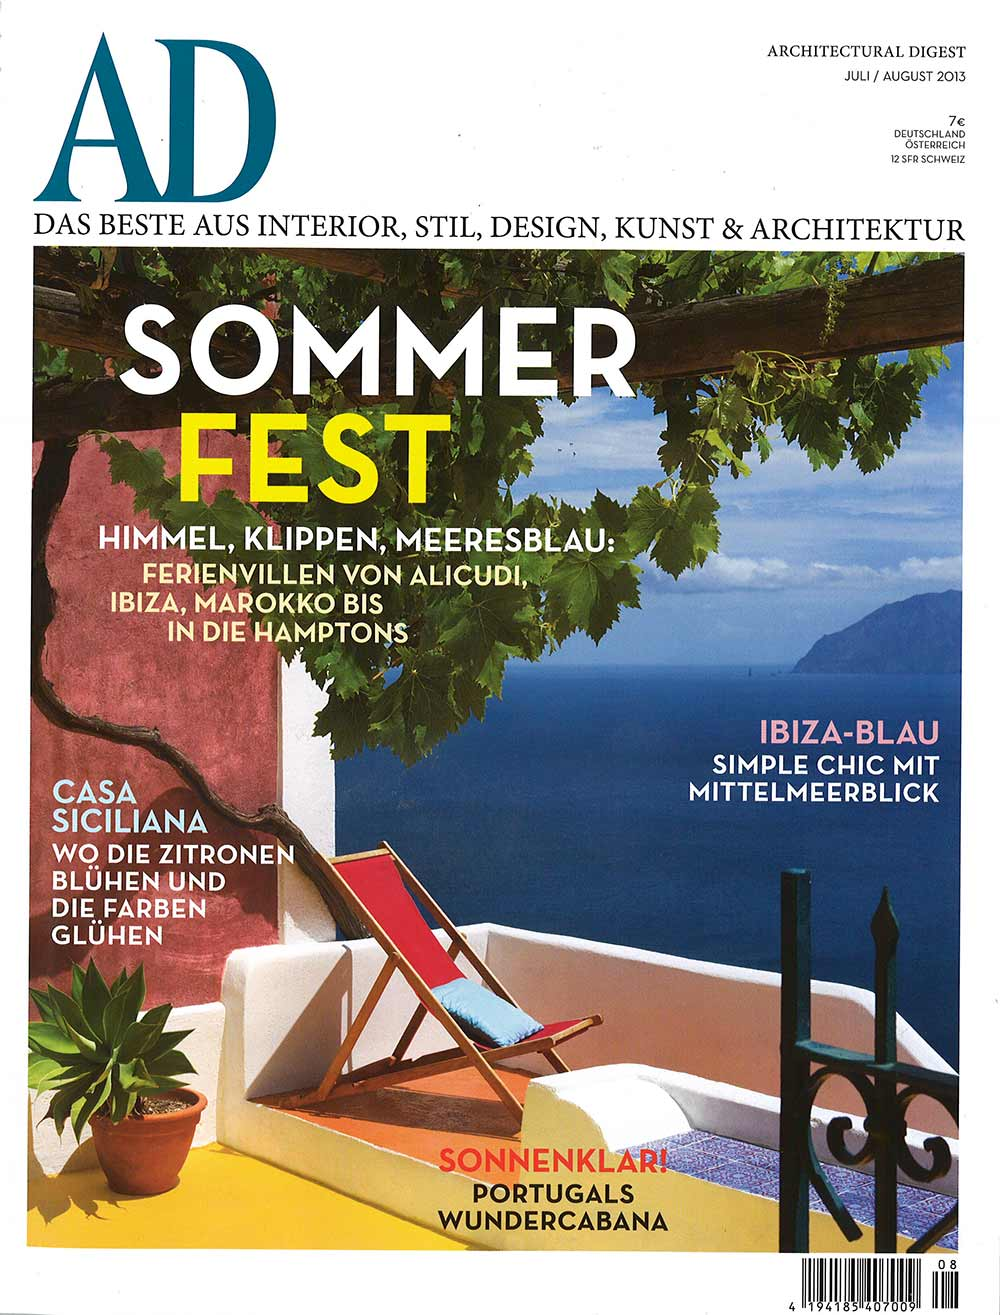 studionucleo_AD_germania_luglio-agosto_2013_cover_low